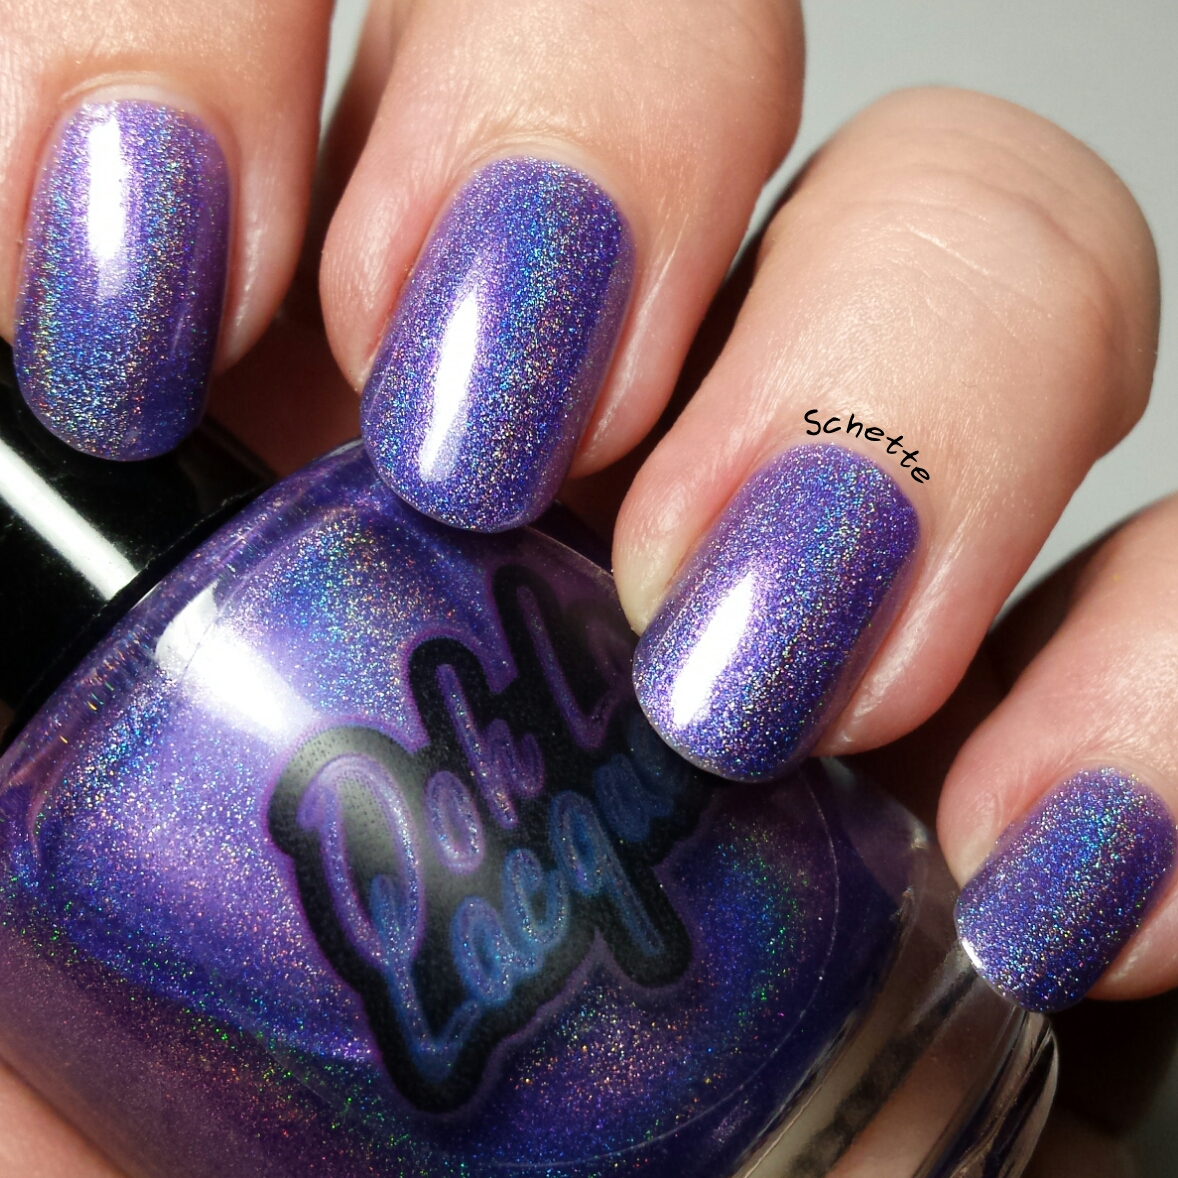 OohLaLacquer : Regal Knivel